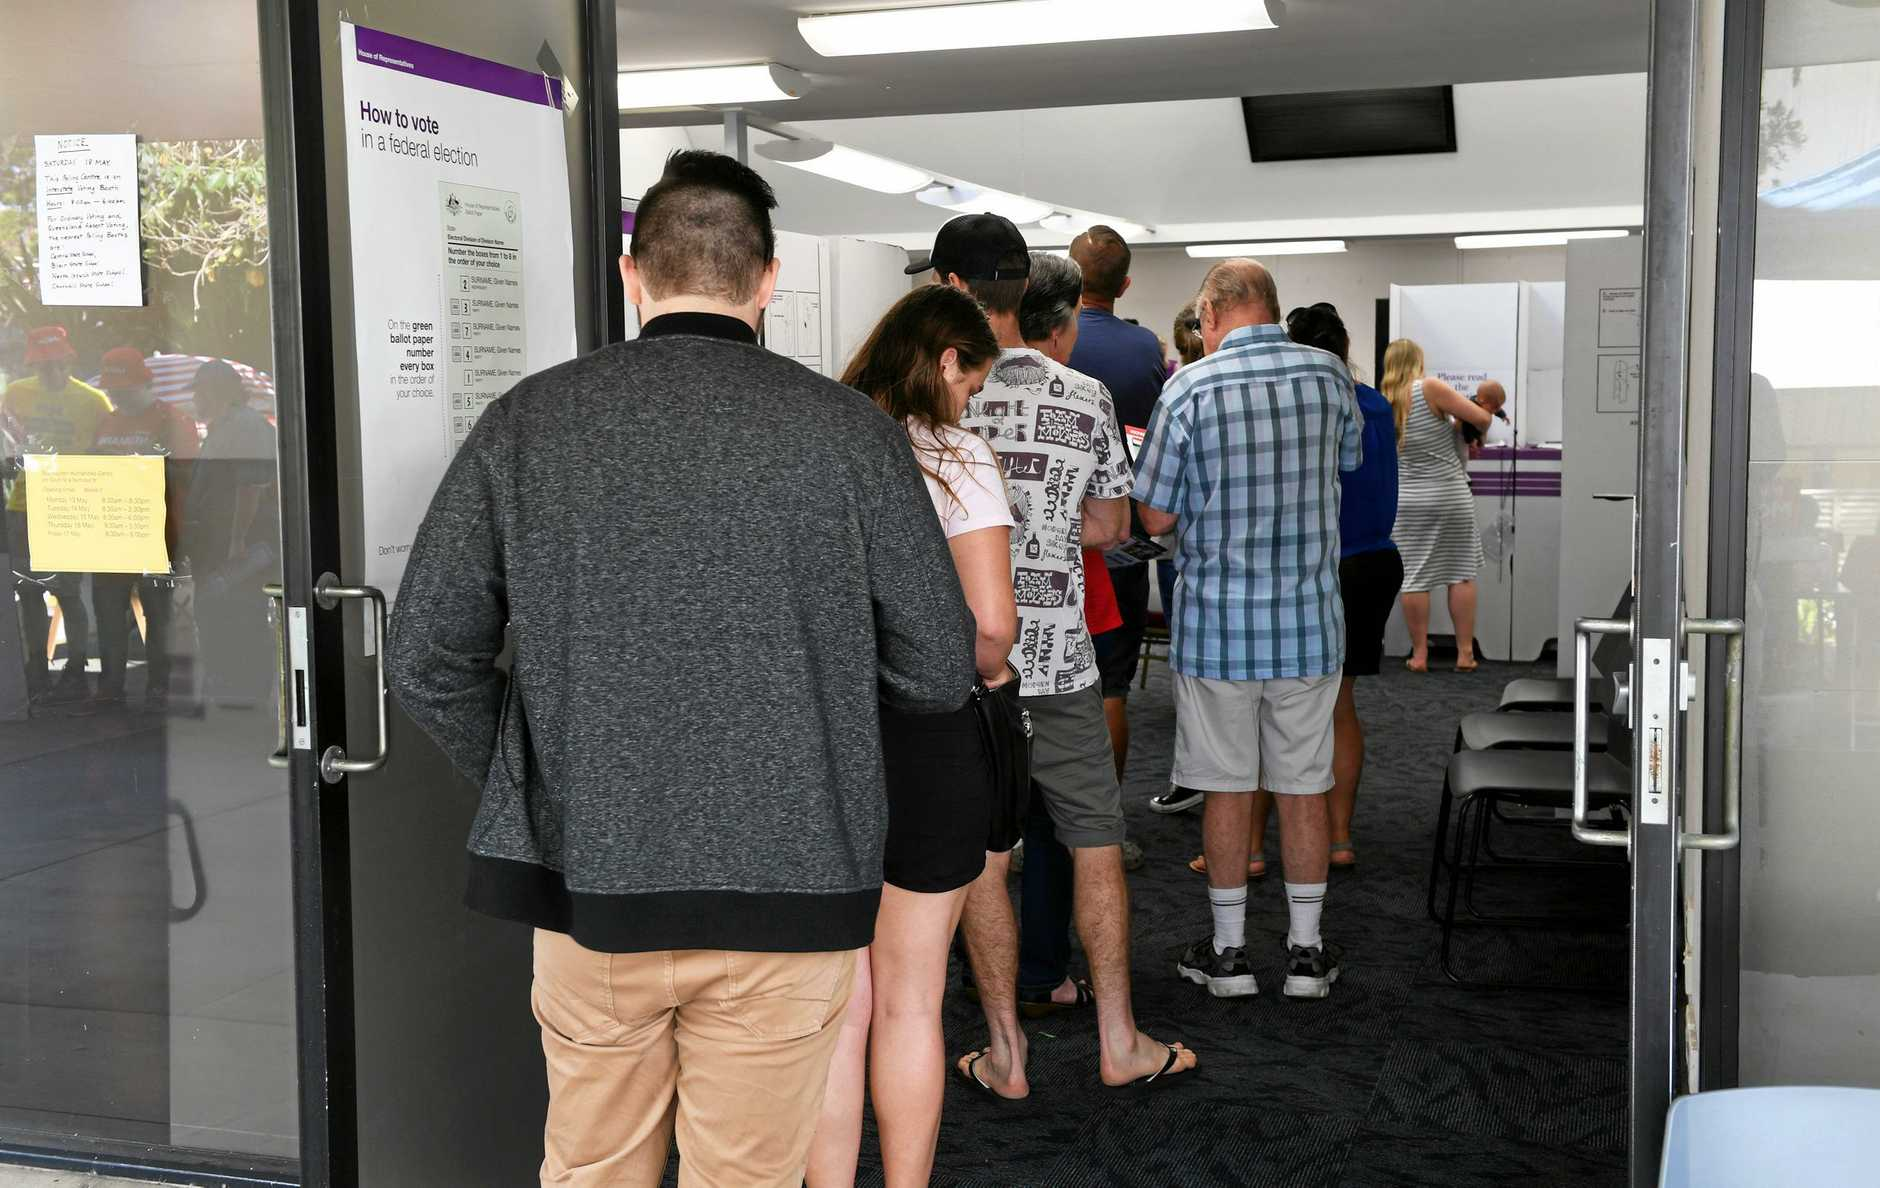 Pre-polling at the Humanties Centre in Ipswich on Thursday.